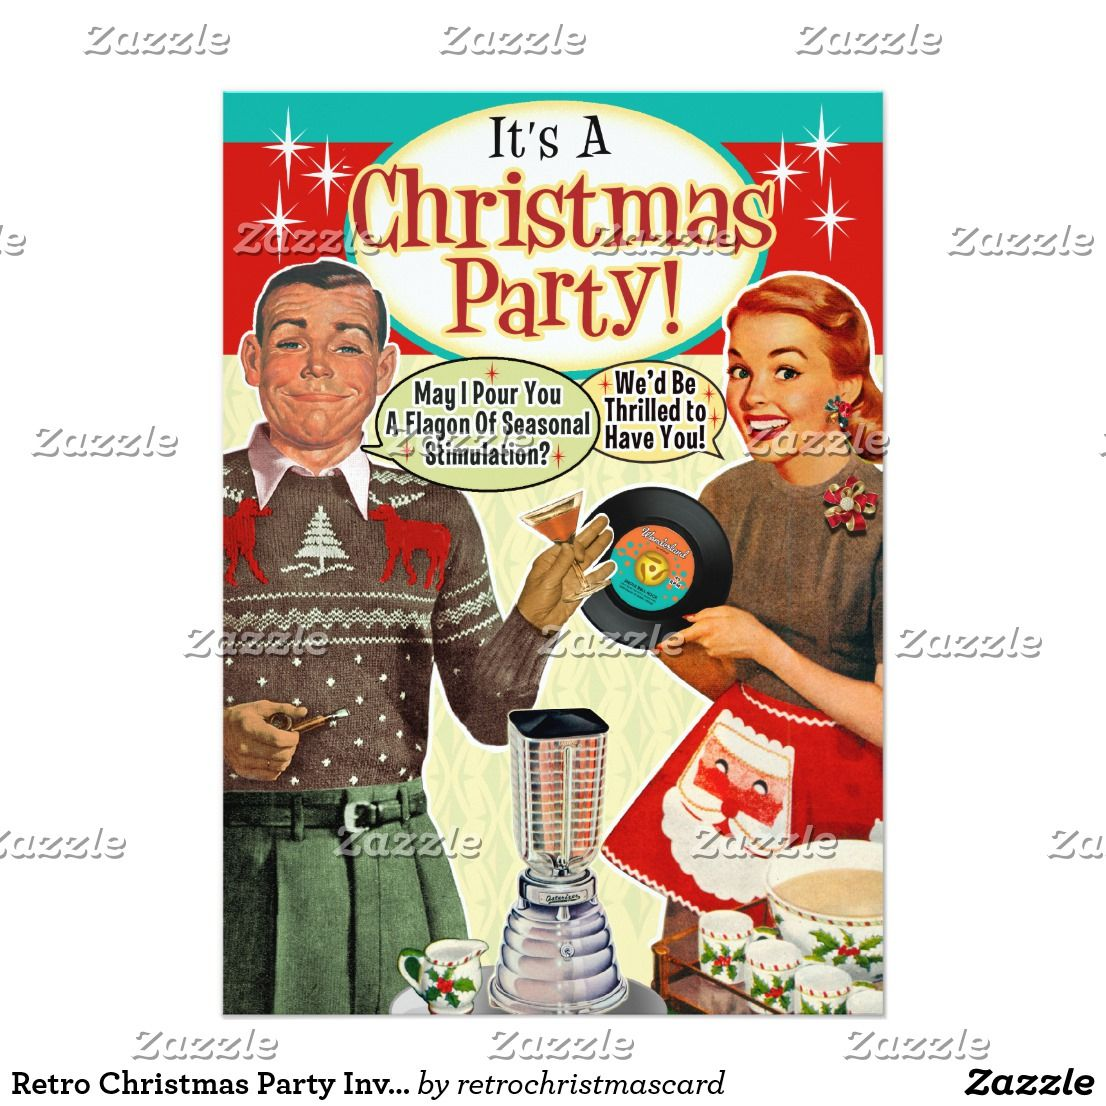 Retro Christmas Party Invitations | Vintage christmas party and ...